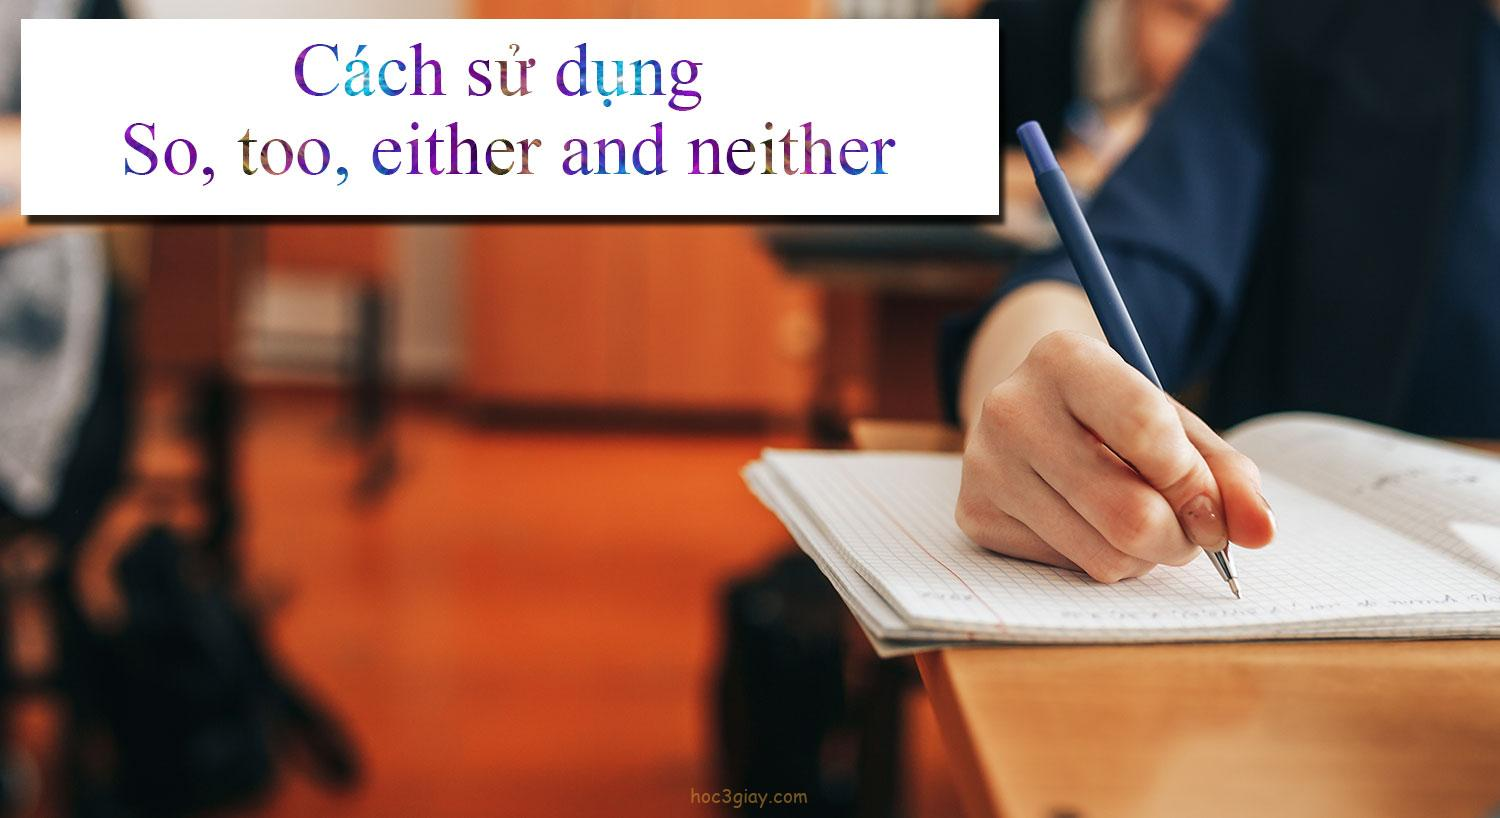 Cách sử dụng So, too, either and neither